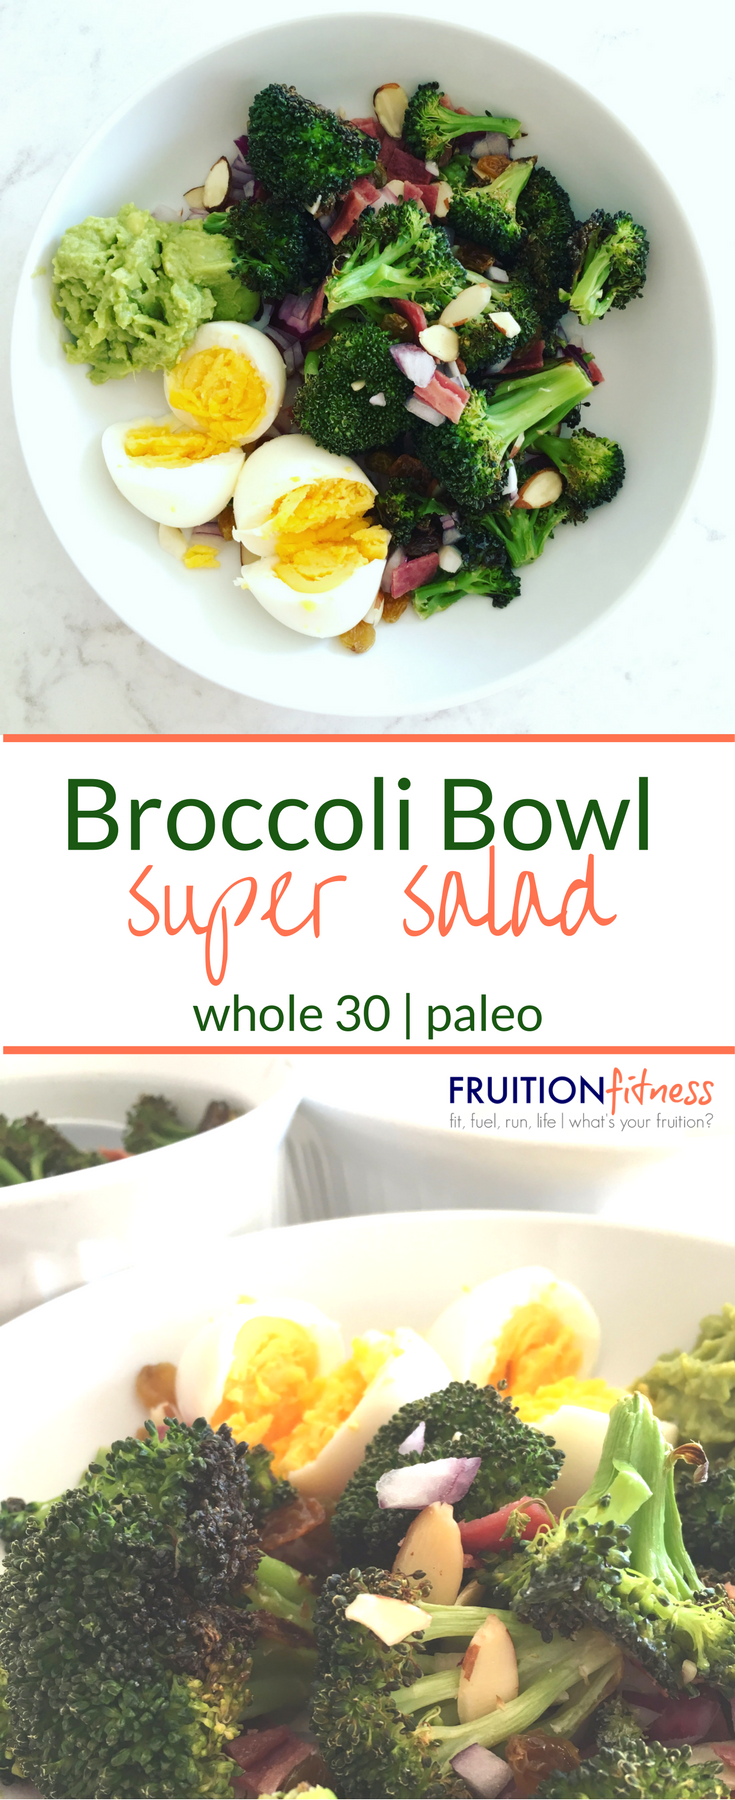 Broccoli Bowl Super Salad